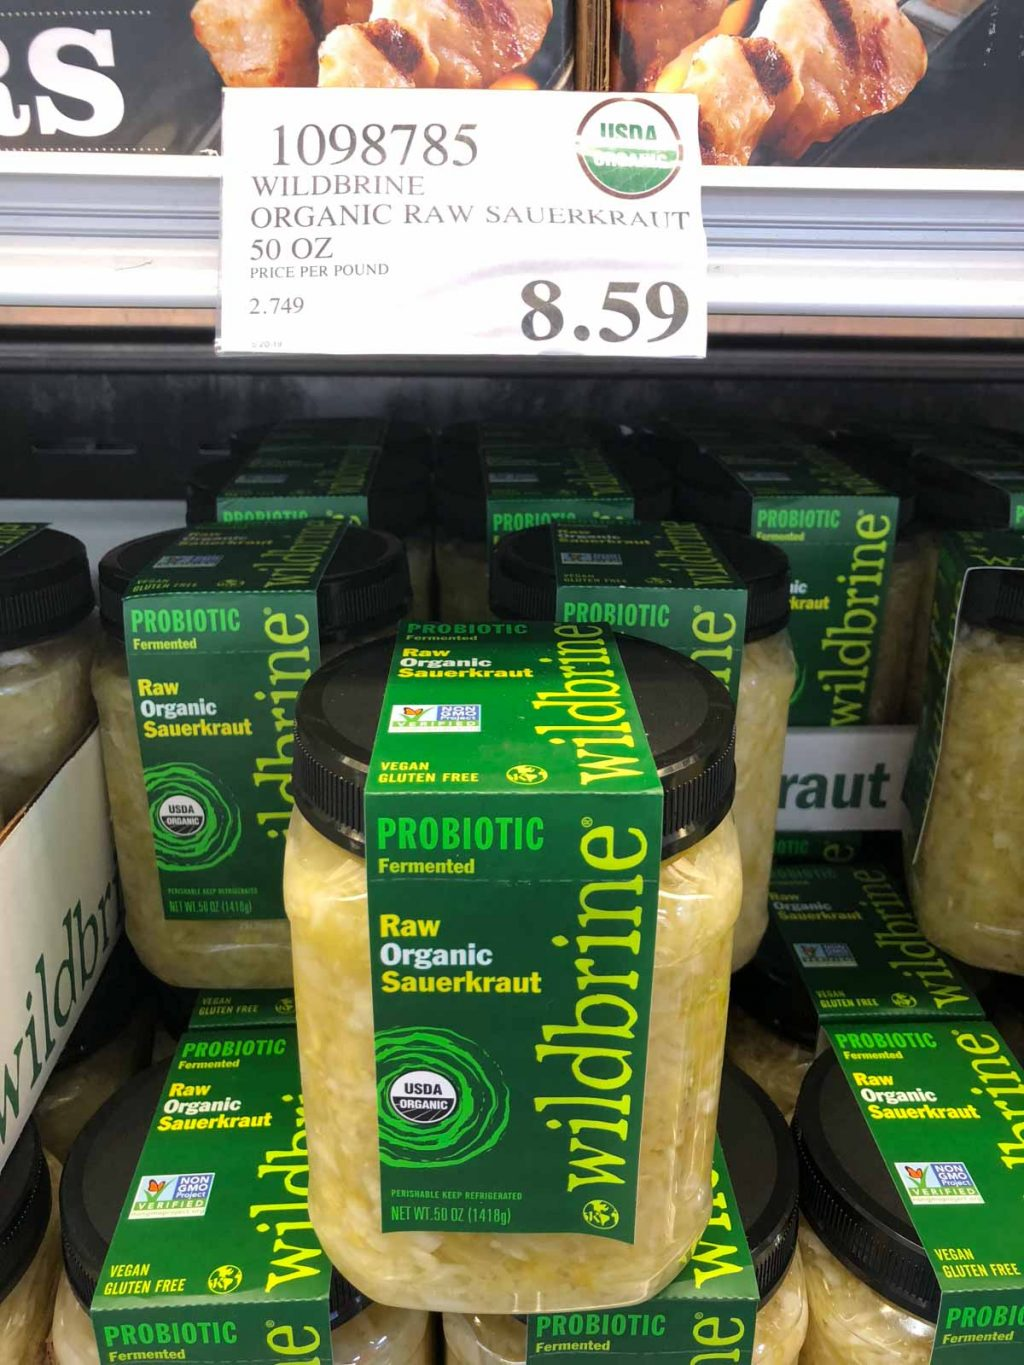 A large container of organic vegan raw wildbrwne sauerkraut for $8.59 at Costco.